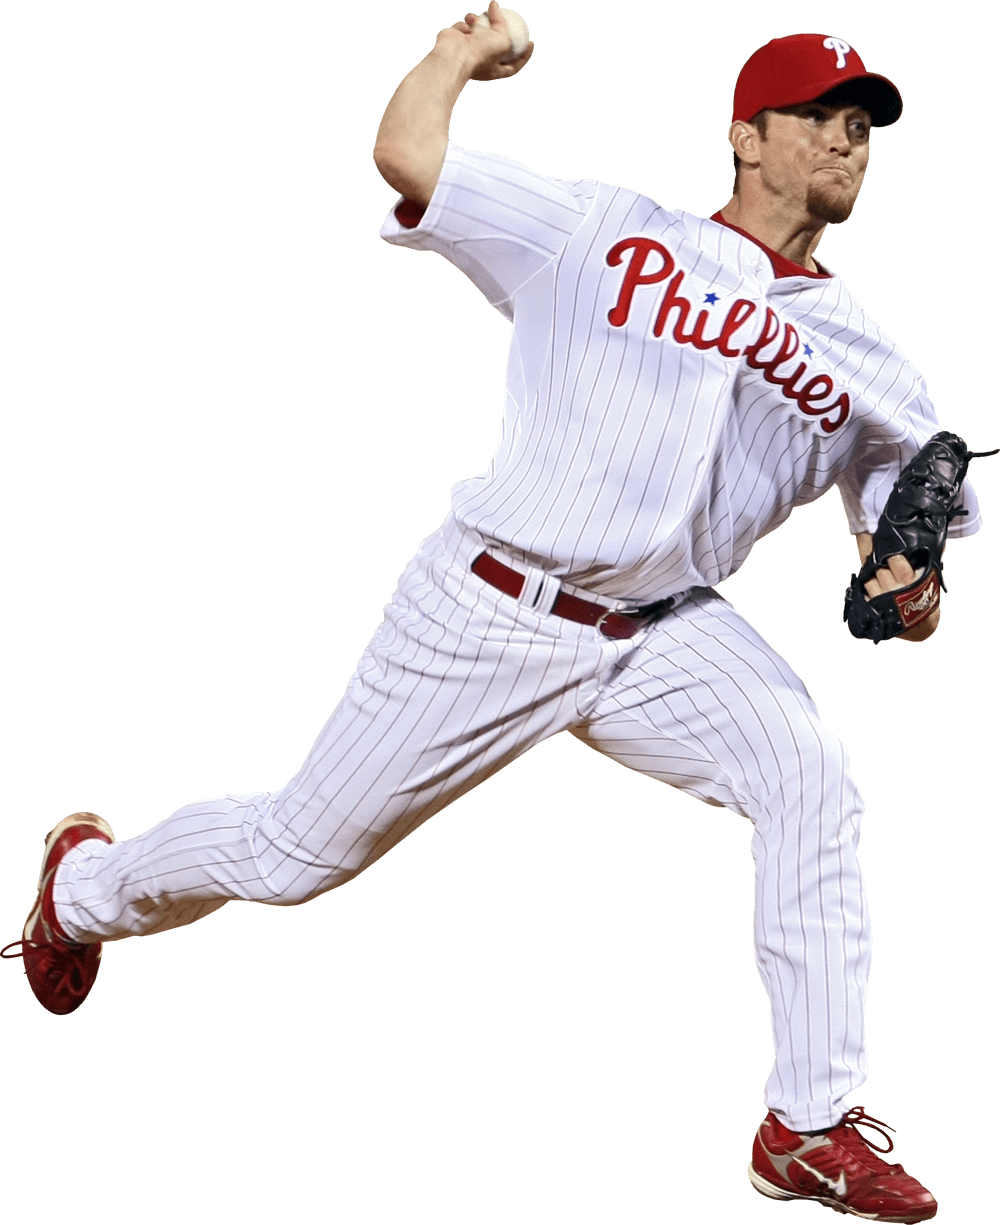 Baseball pitcher png. Philadelphia phillies player transparent